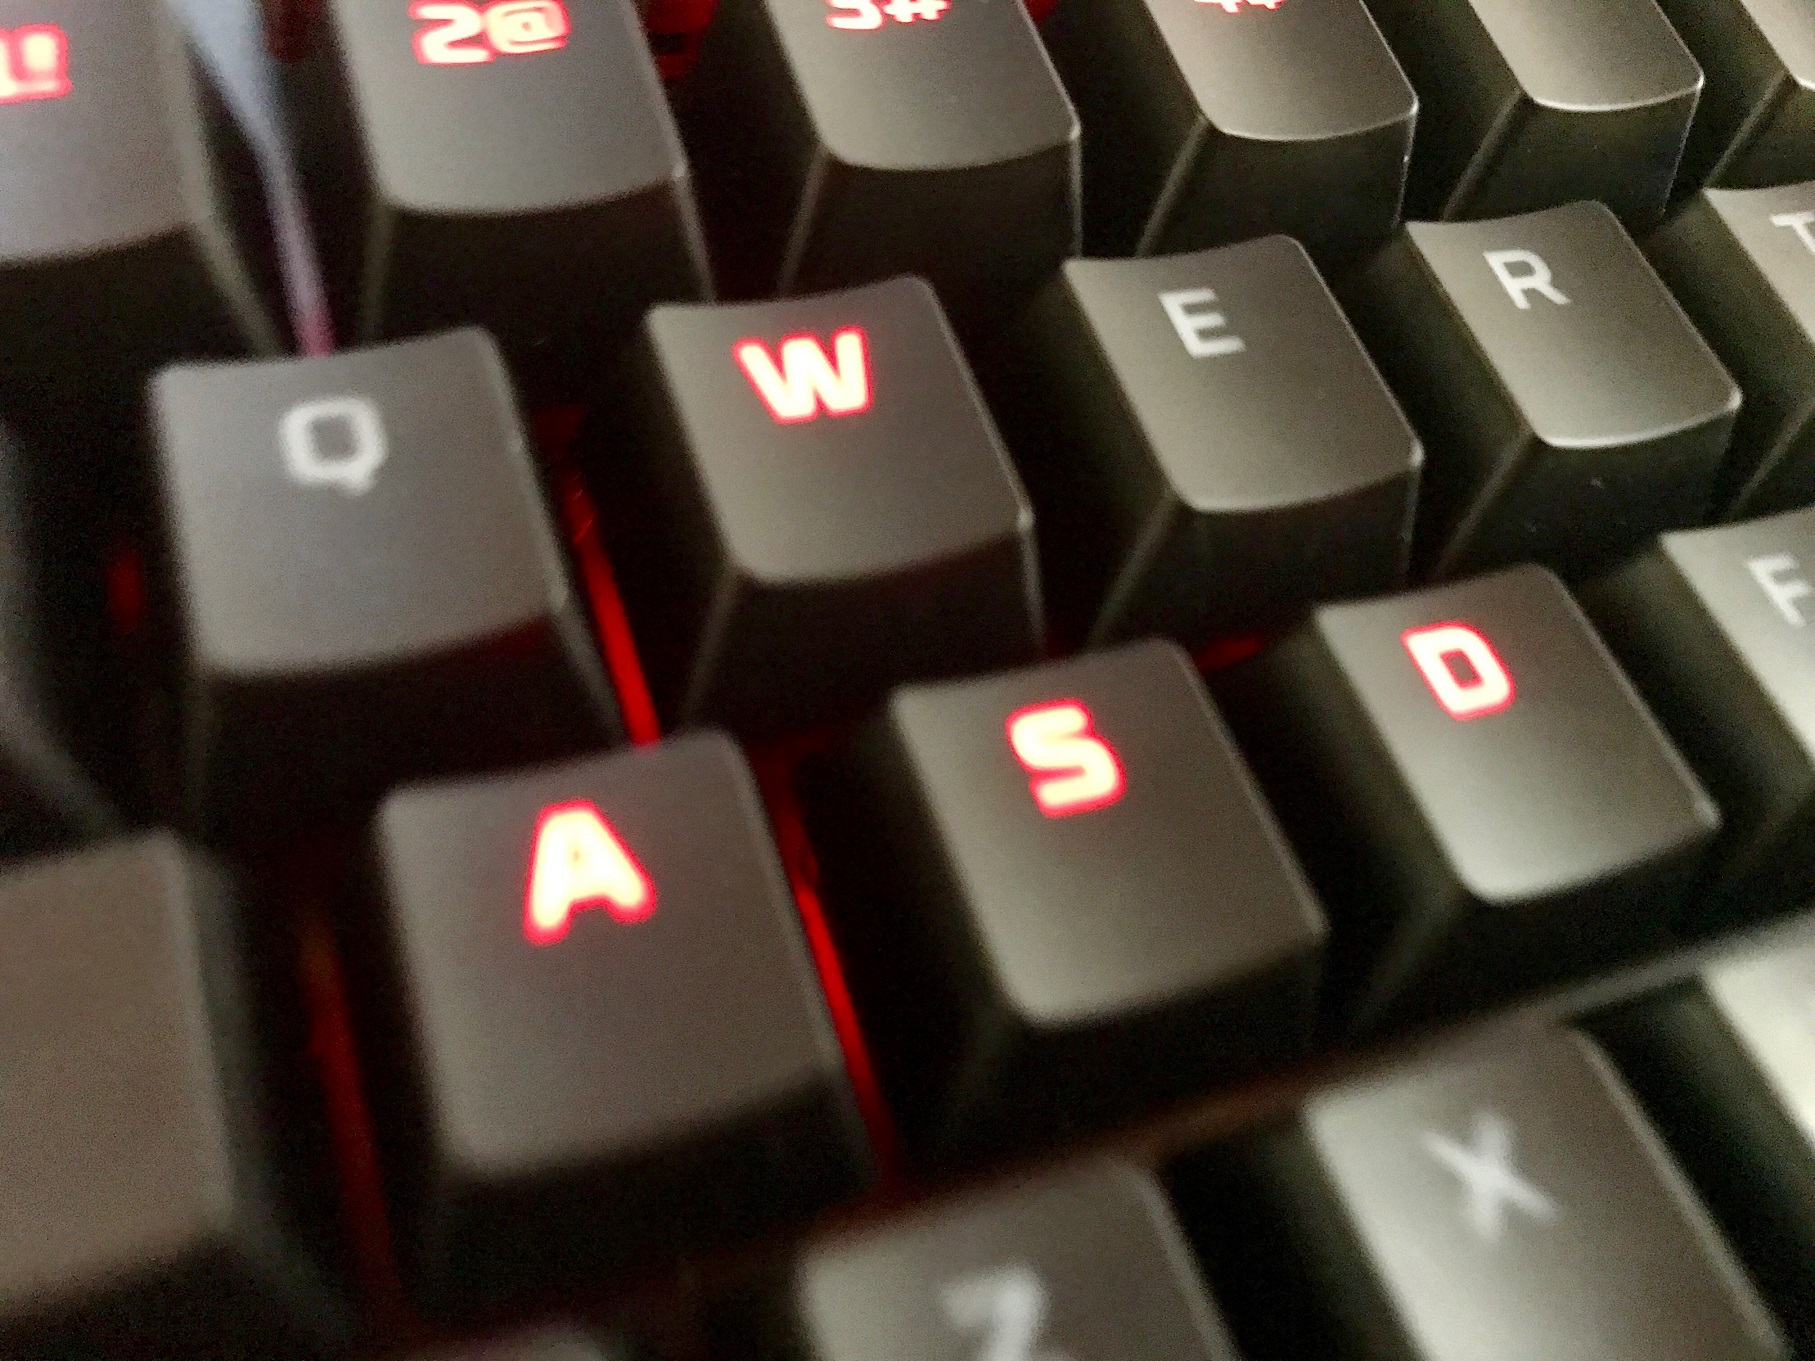 The HyperX Alloy Elite survived our rigorous durability testing.